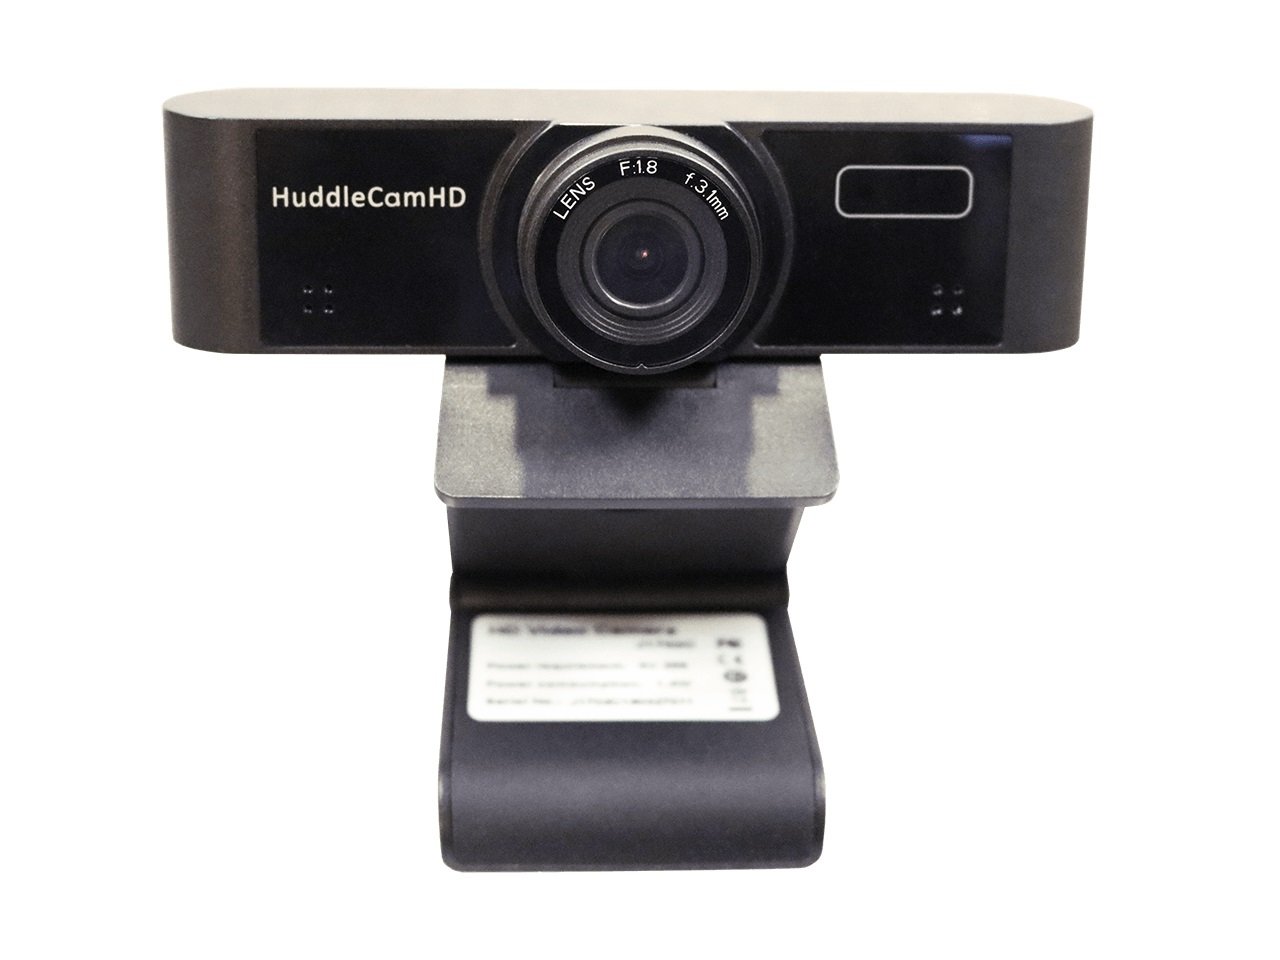 HuddleCamHD HC-WEBCAM-94 Conferencing Plug-and-Play Camera with USB2.0